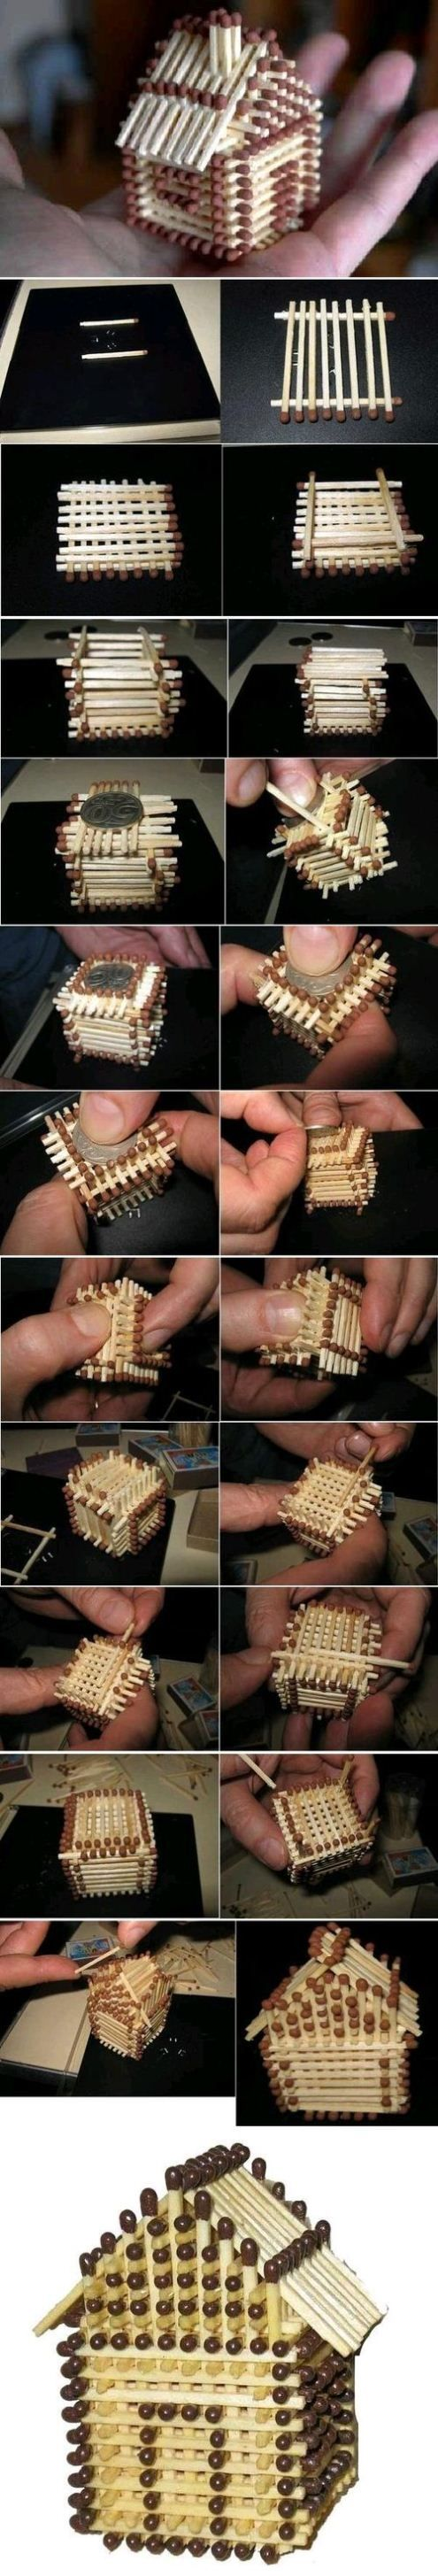 craft a little house with matches